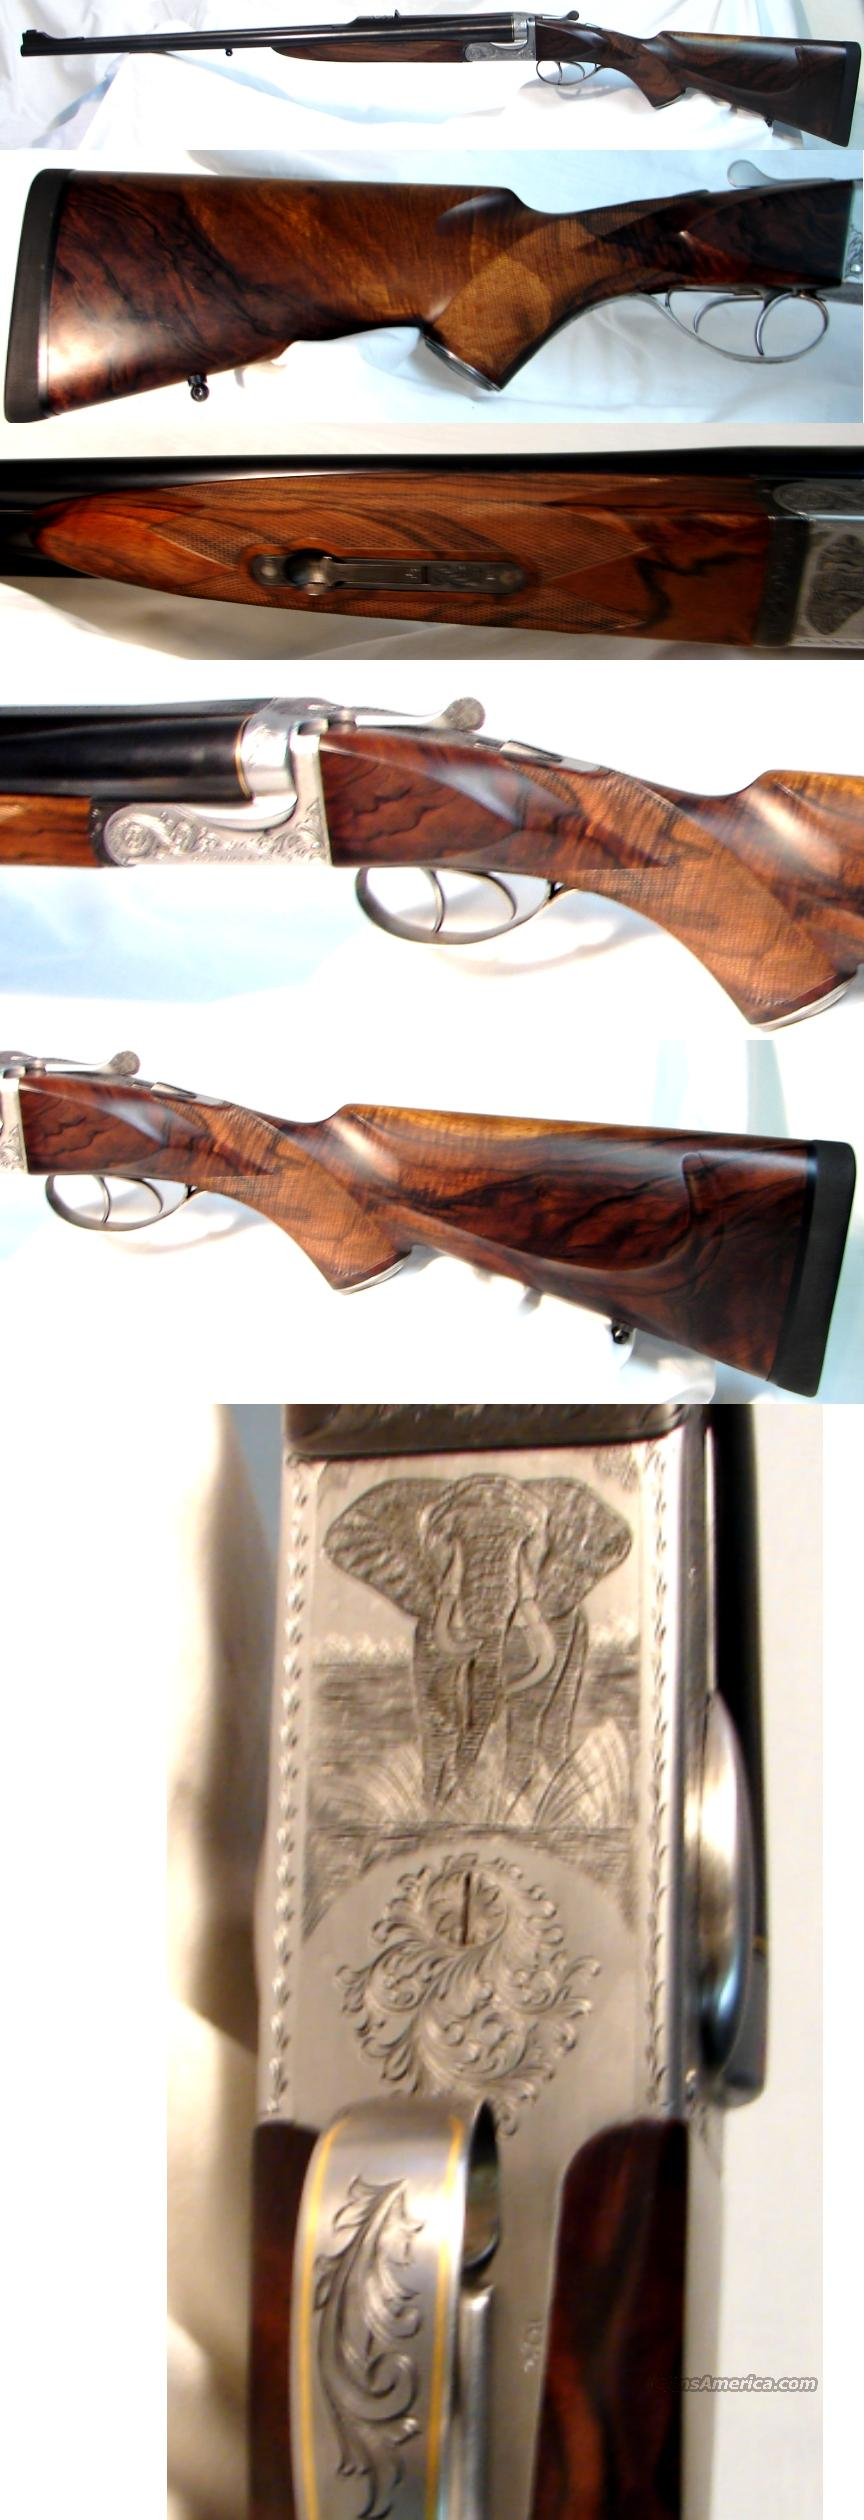 Butch Searcy & Company Deluxe Boxlock Double 470 Nitro Express 25K Invested  Guns > Rifles > Double Rifles (Misc.)